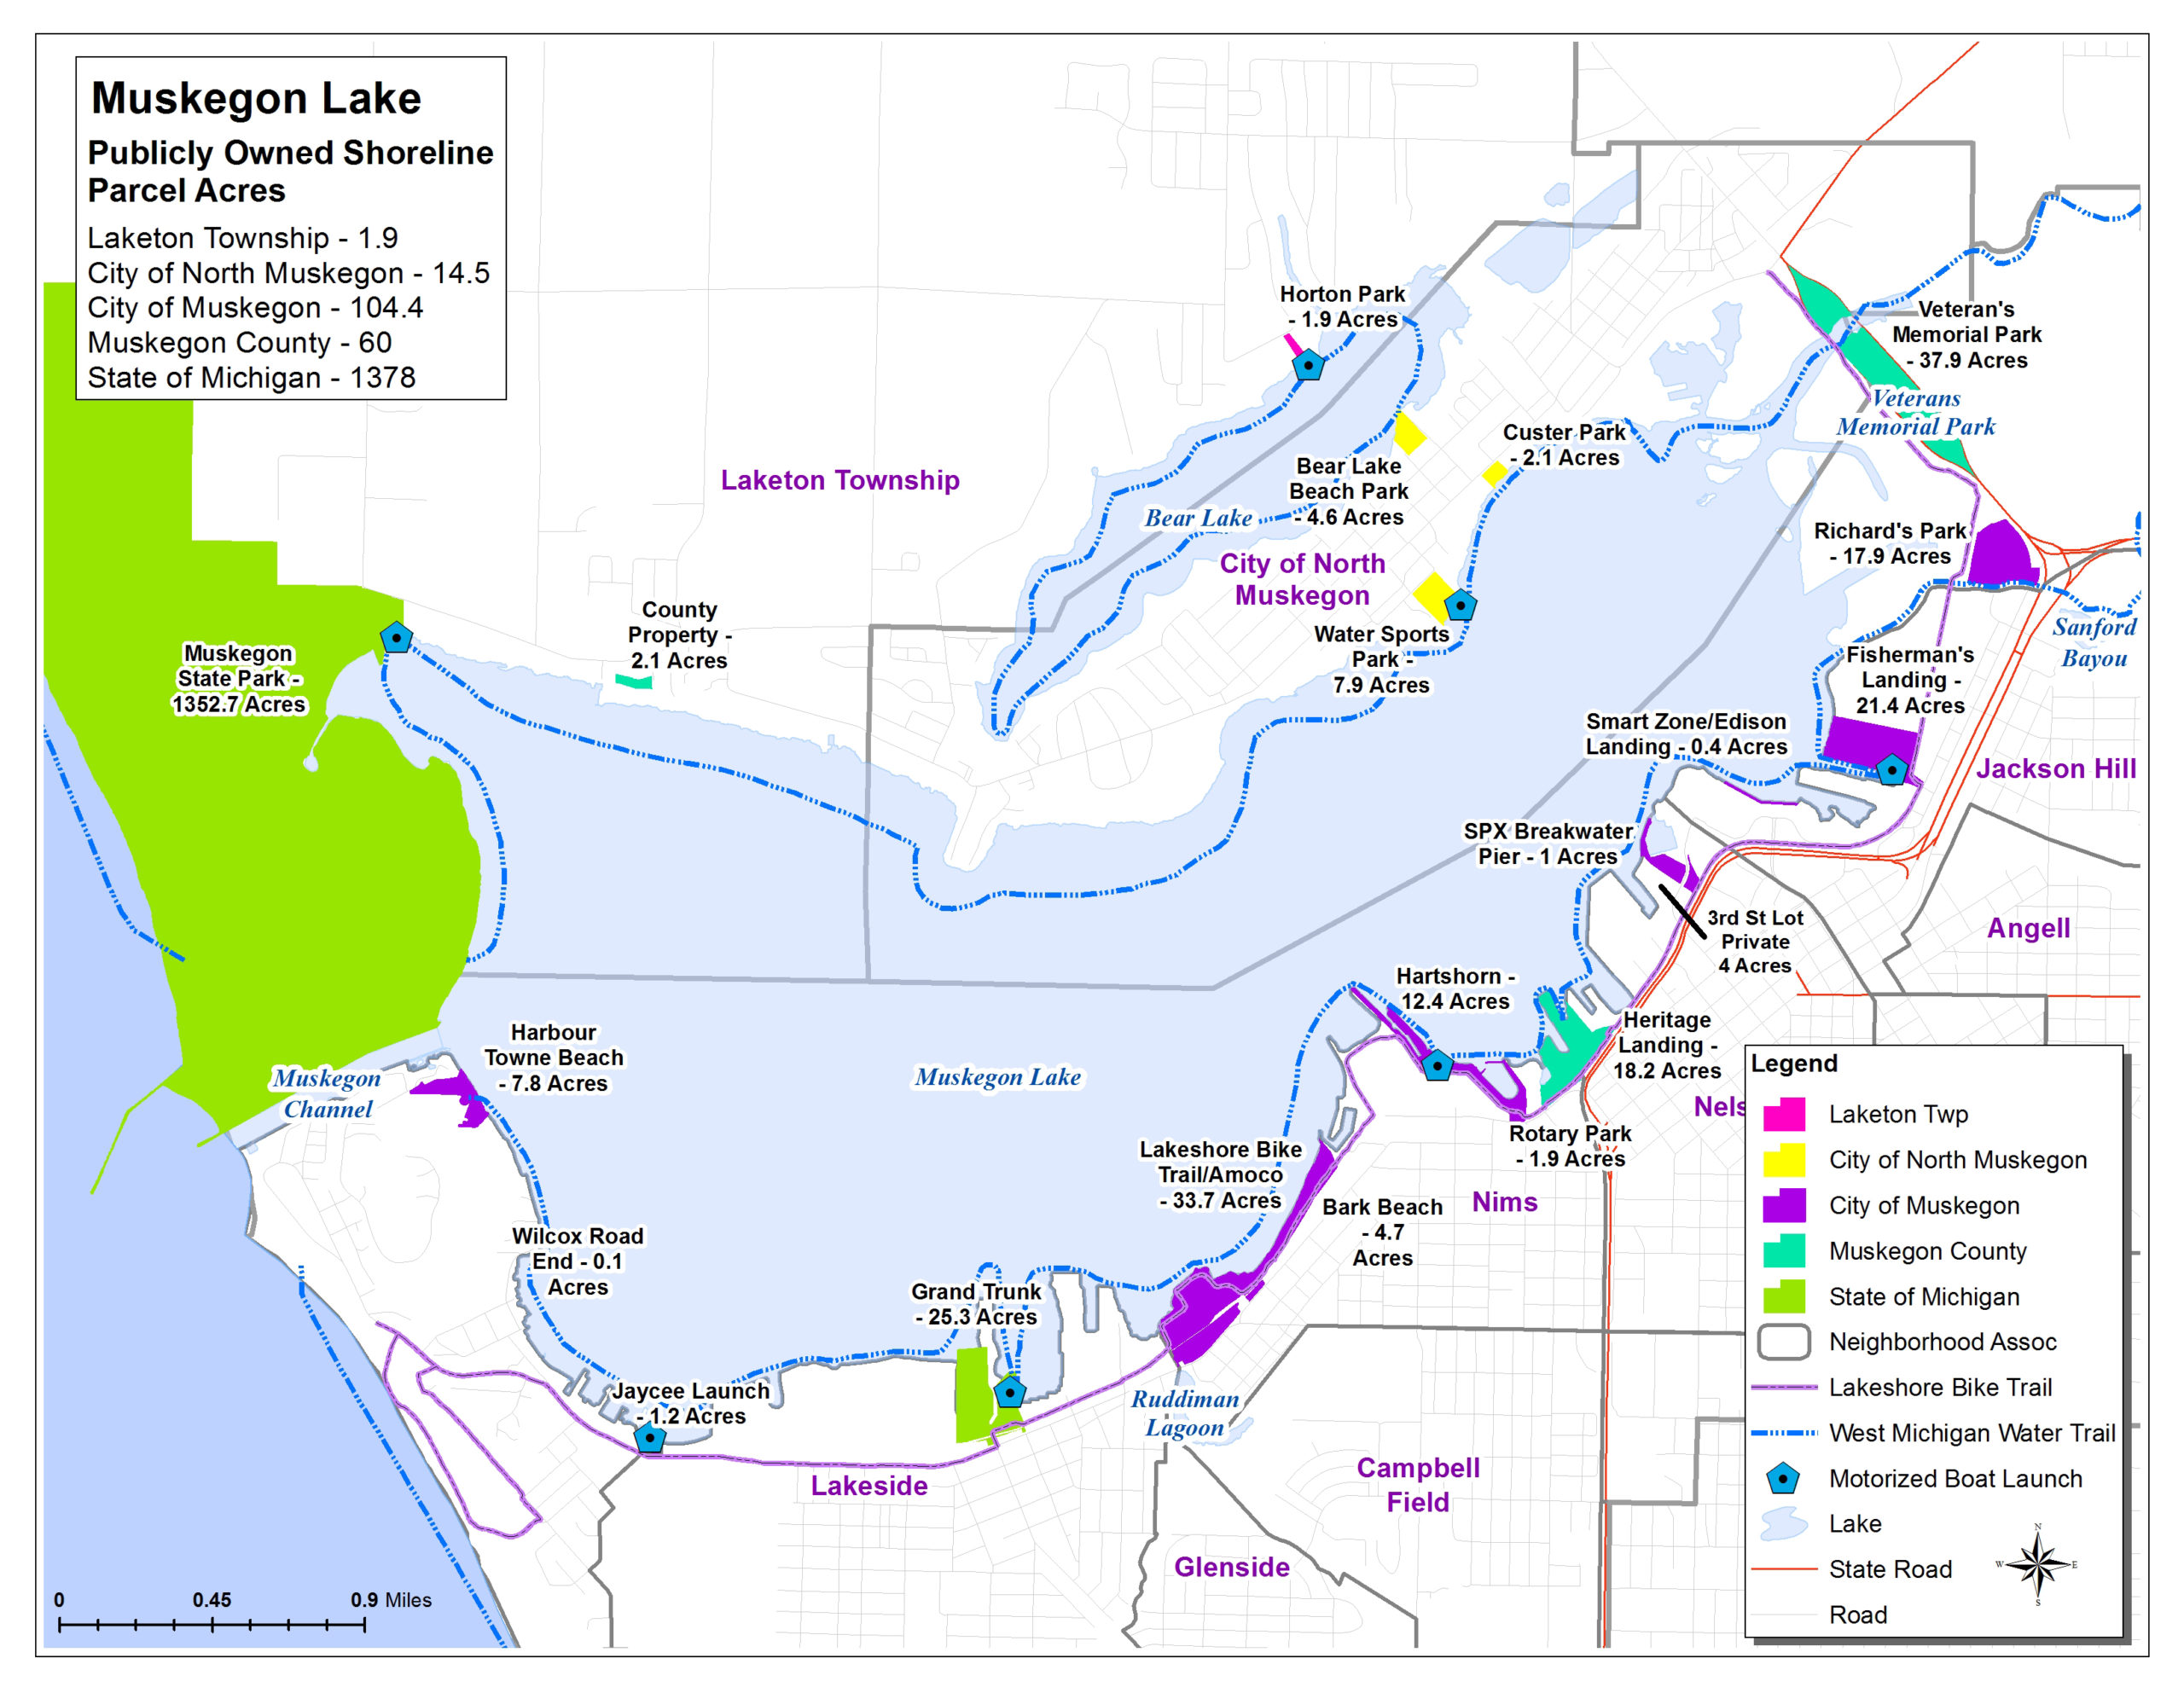 MLWP | Public Parcels Map of Muskegon Lake